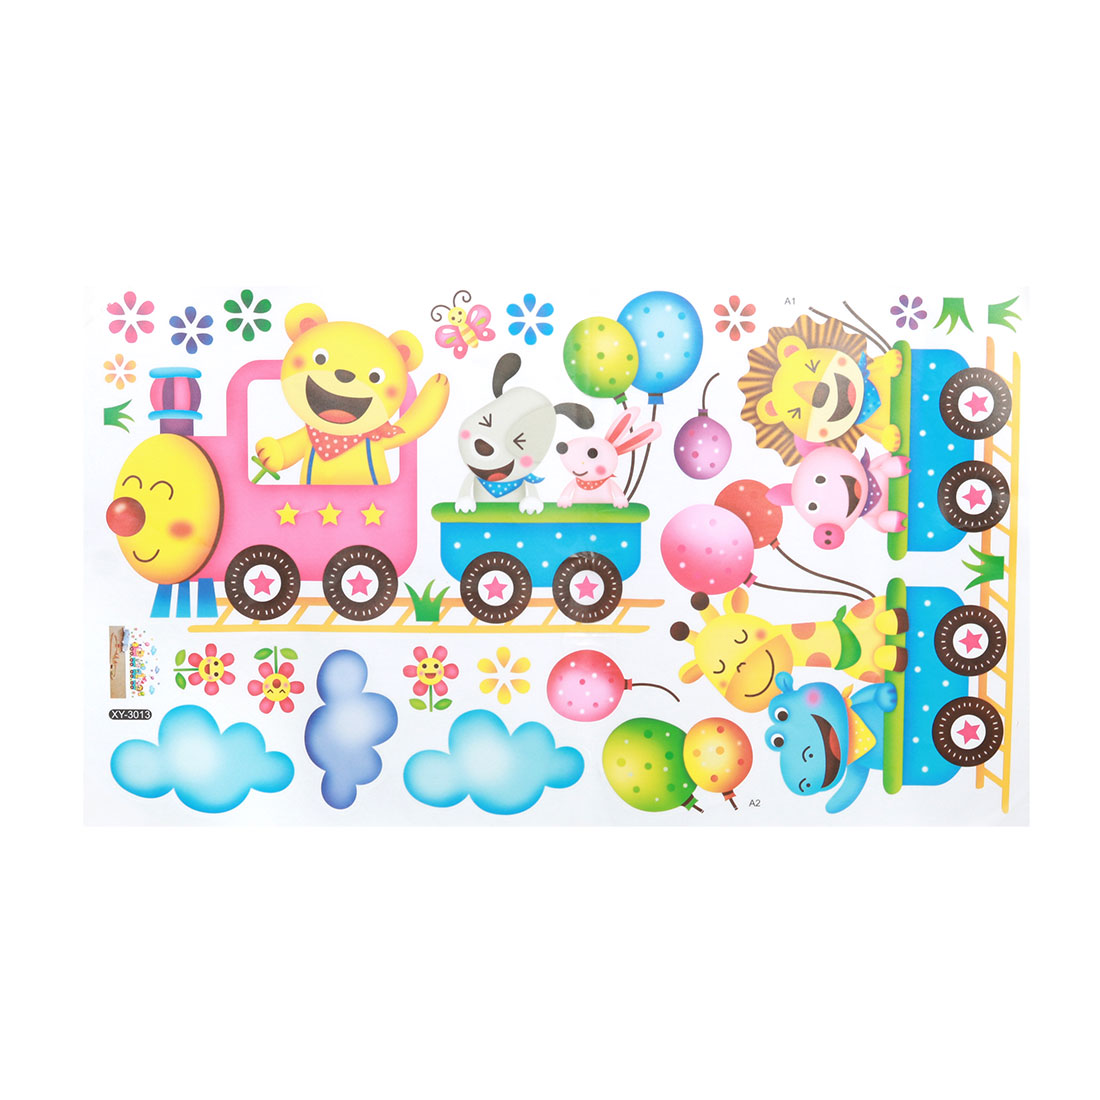 Animals and Train Pattern Wall Sticker Self-stick Decal for Living Room